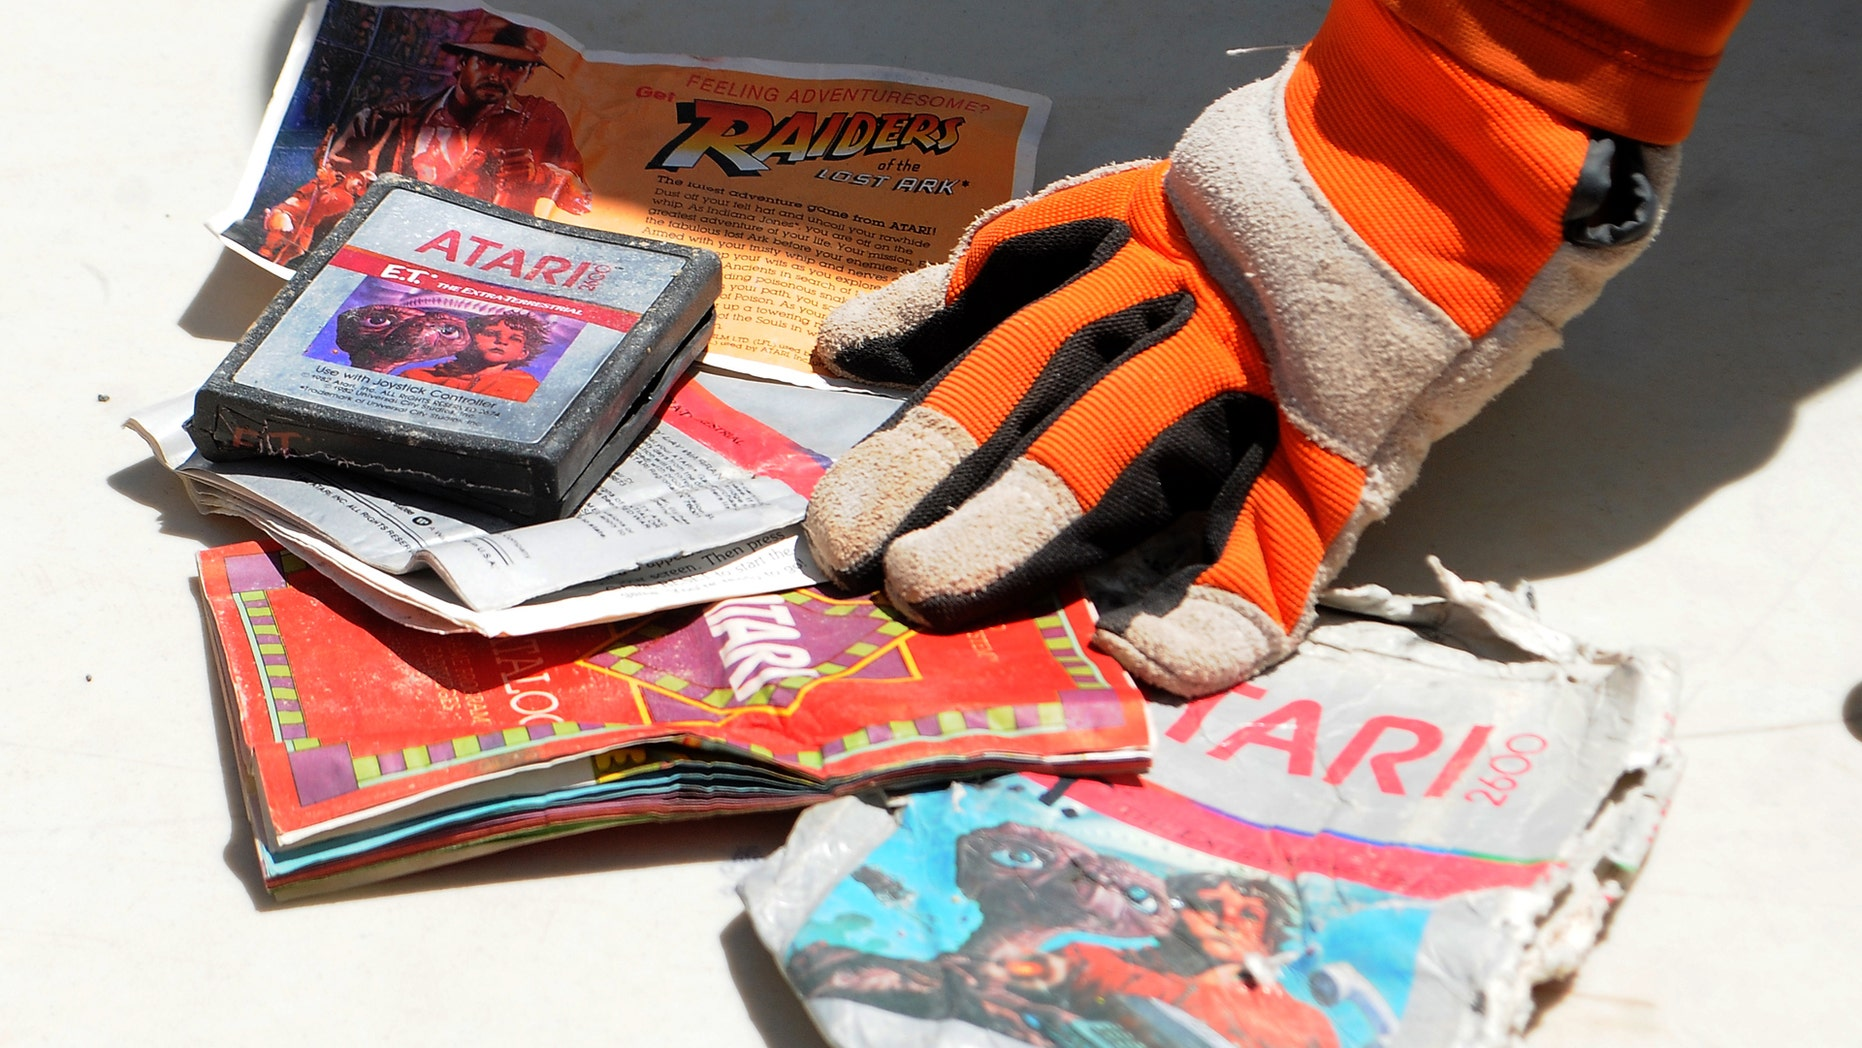 File photo: The first recovered Atari cartridge and packaging recovered from the old Alamogordo landfill are shown in Alamogordo, New Mexico, April 26, 2014.  (REUTERS/Mark Wilson)